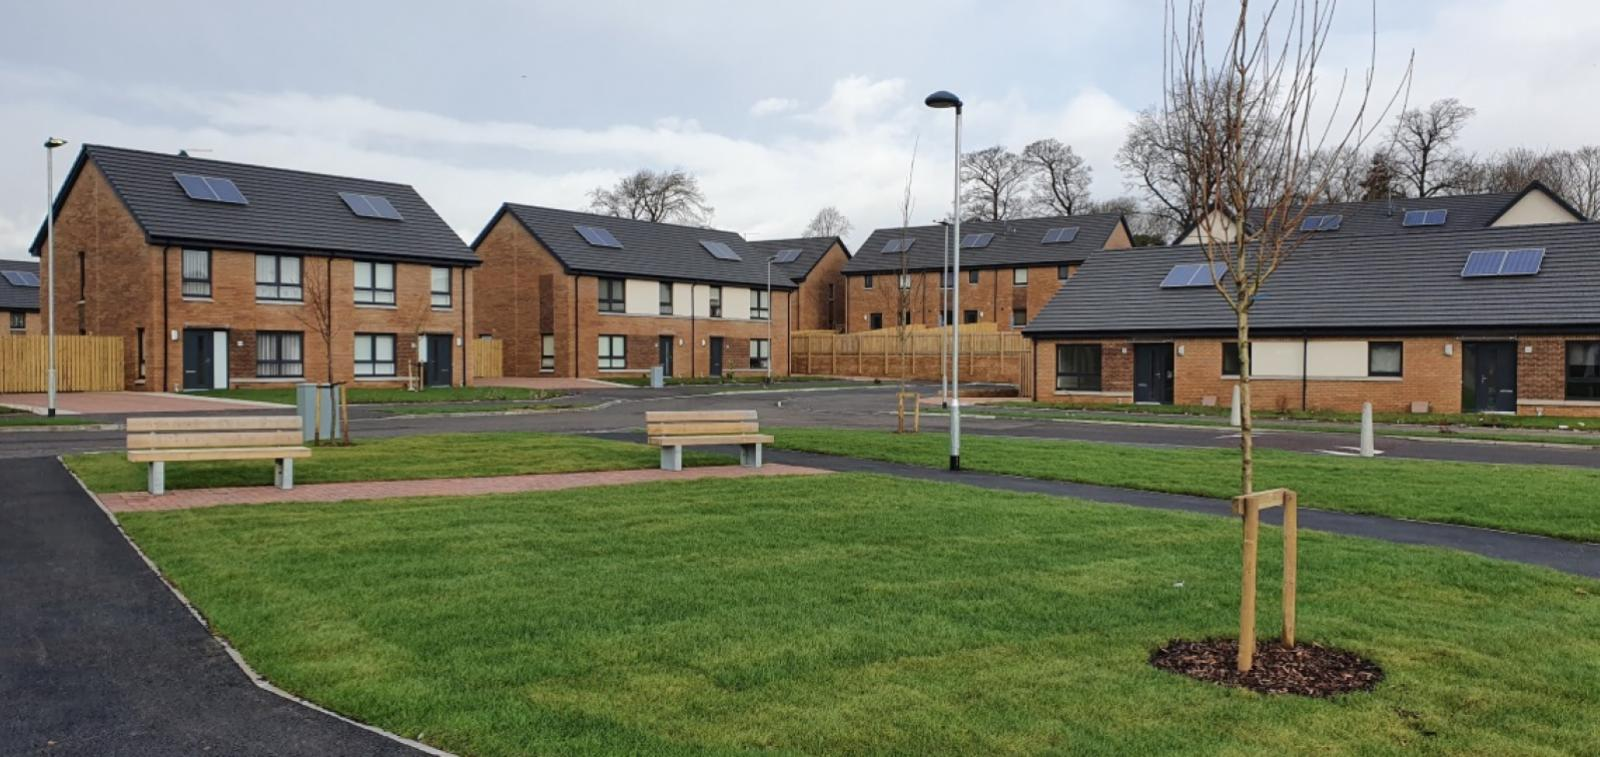 Exterior of Newfield Square, affordable housing development in Glasgow